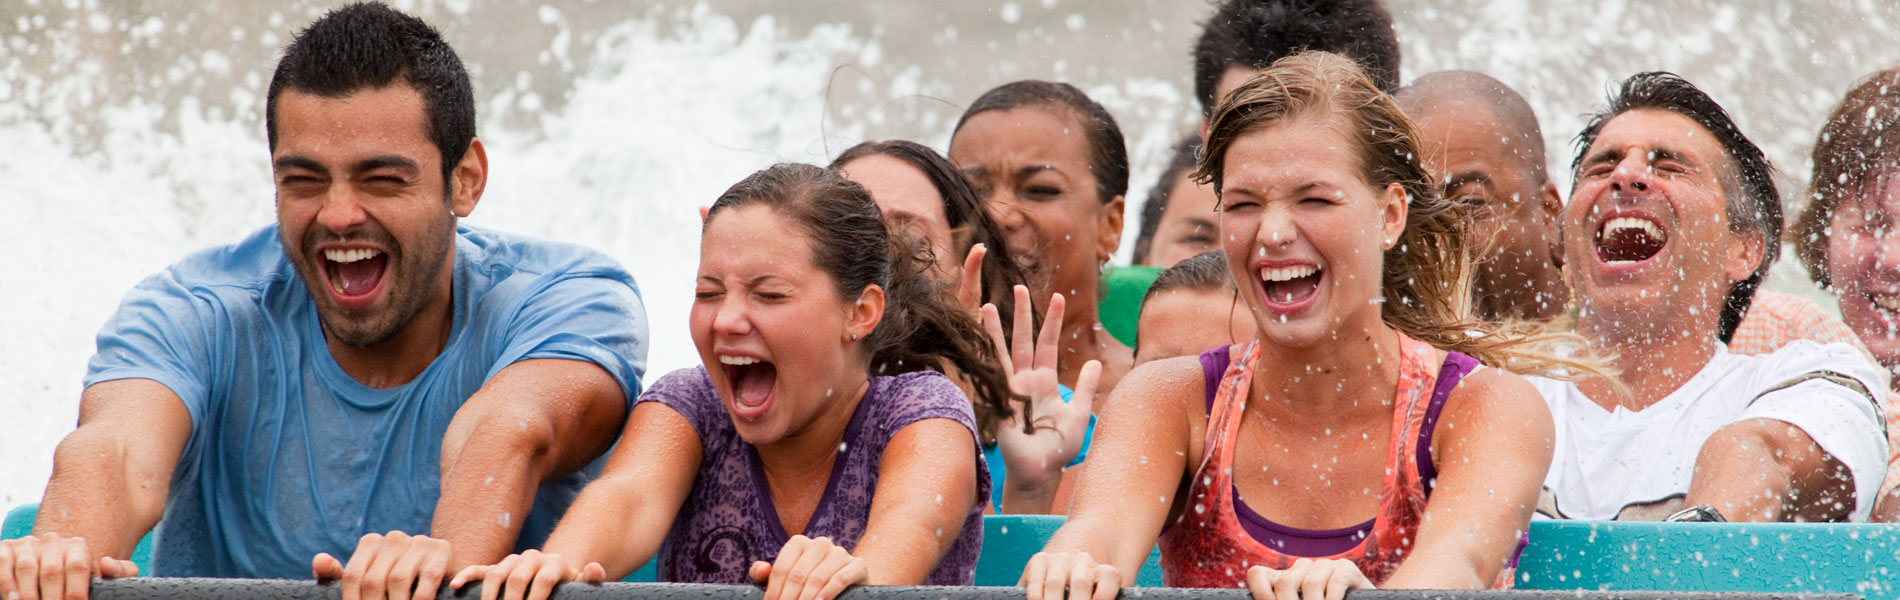 People riding Escape From Pompeii water ride at Busch Gardens Williamsburg